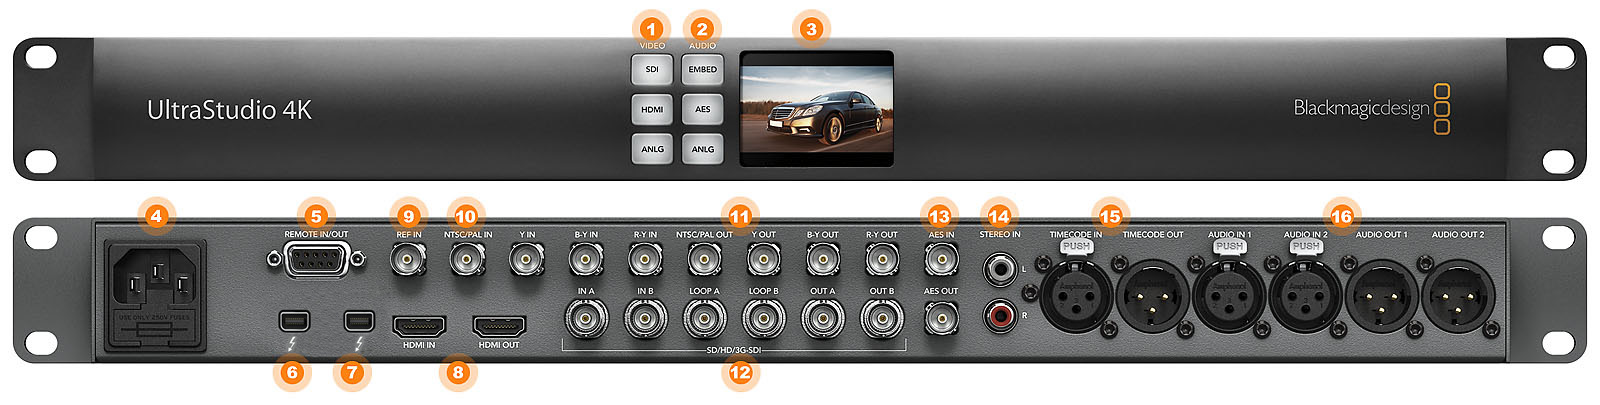 Blackmagic Design UltraStudio 4k Konektivita